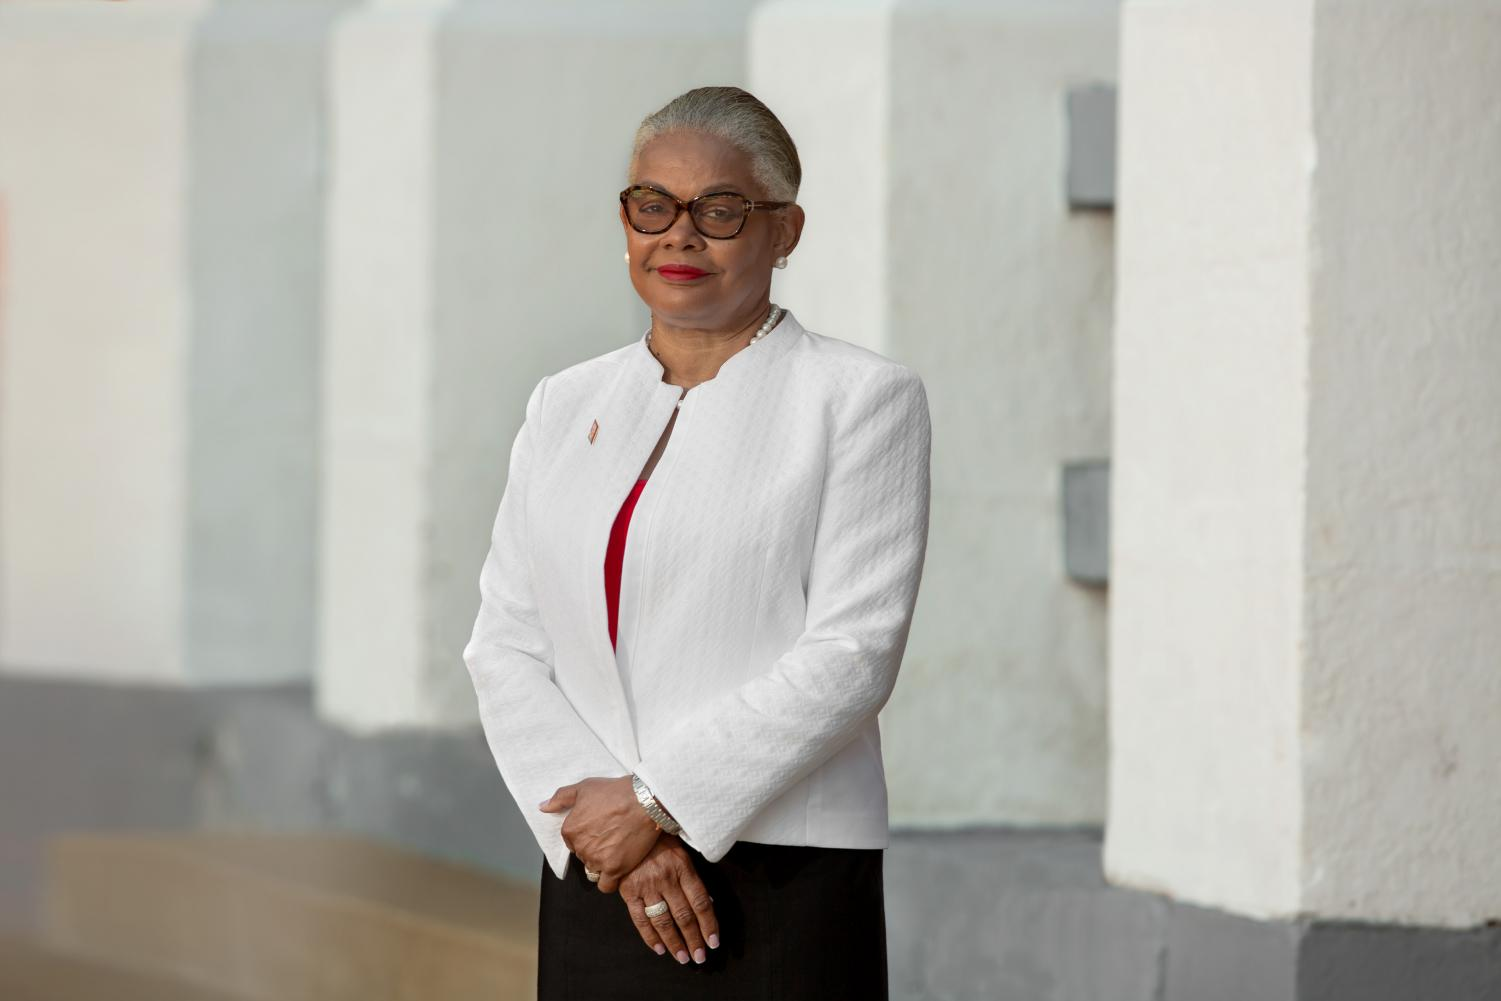 Geraldine M. Jones, president, California University of Pennsylvania